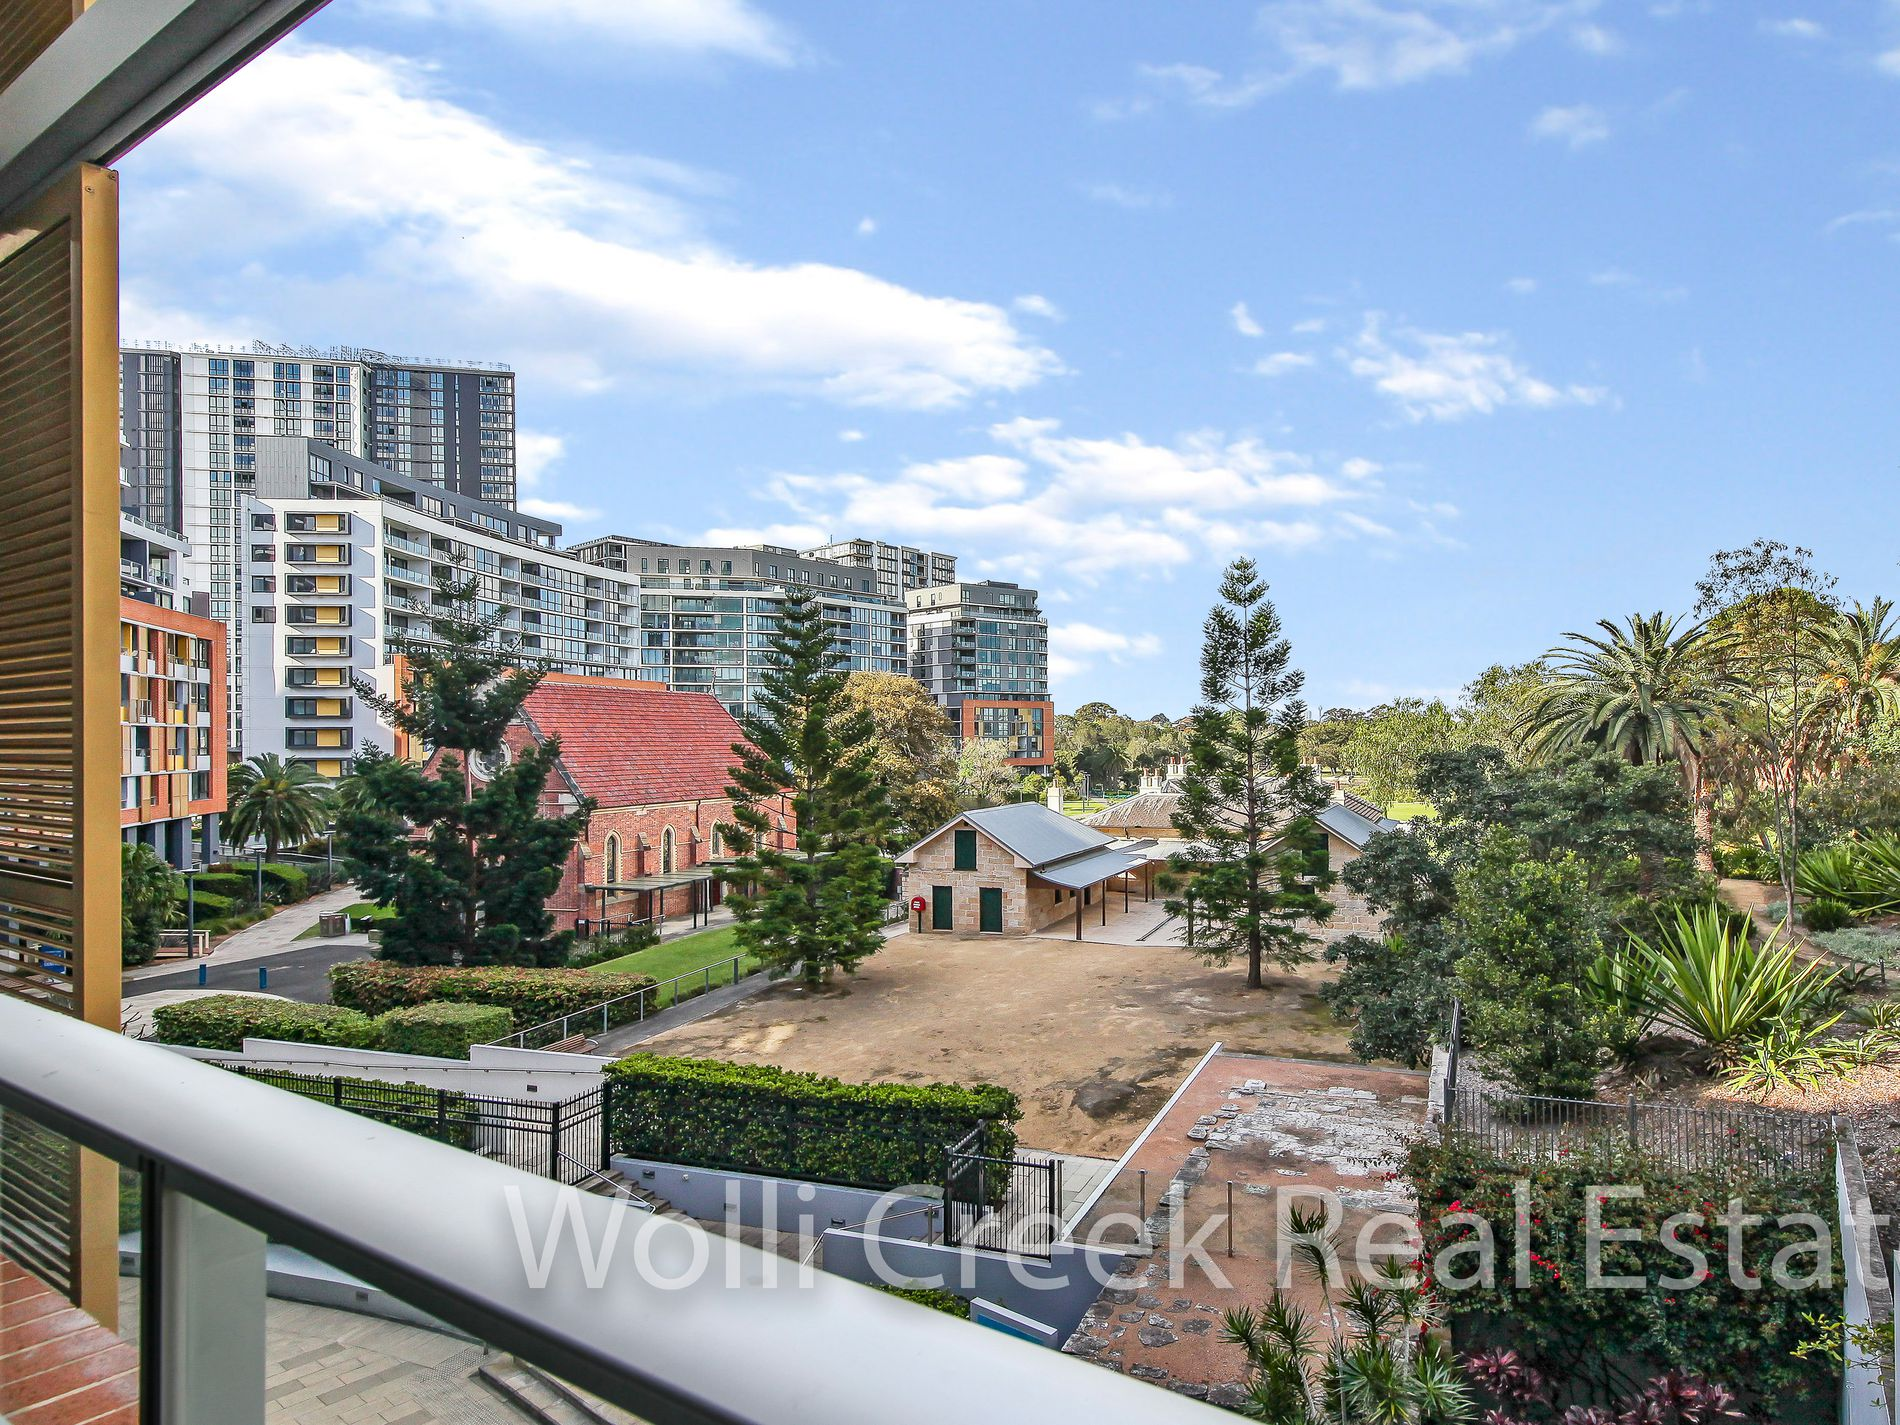 410 / 4 Brodie Spark Drive, Wolli Creek